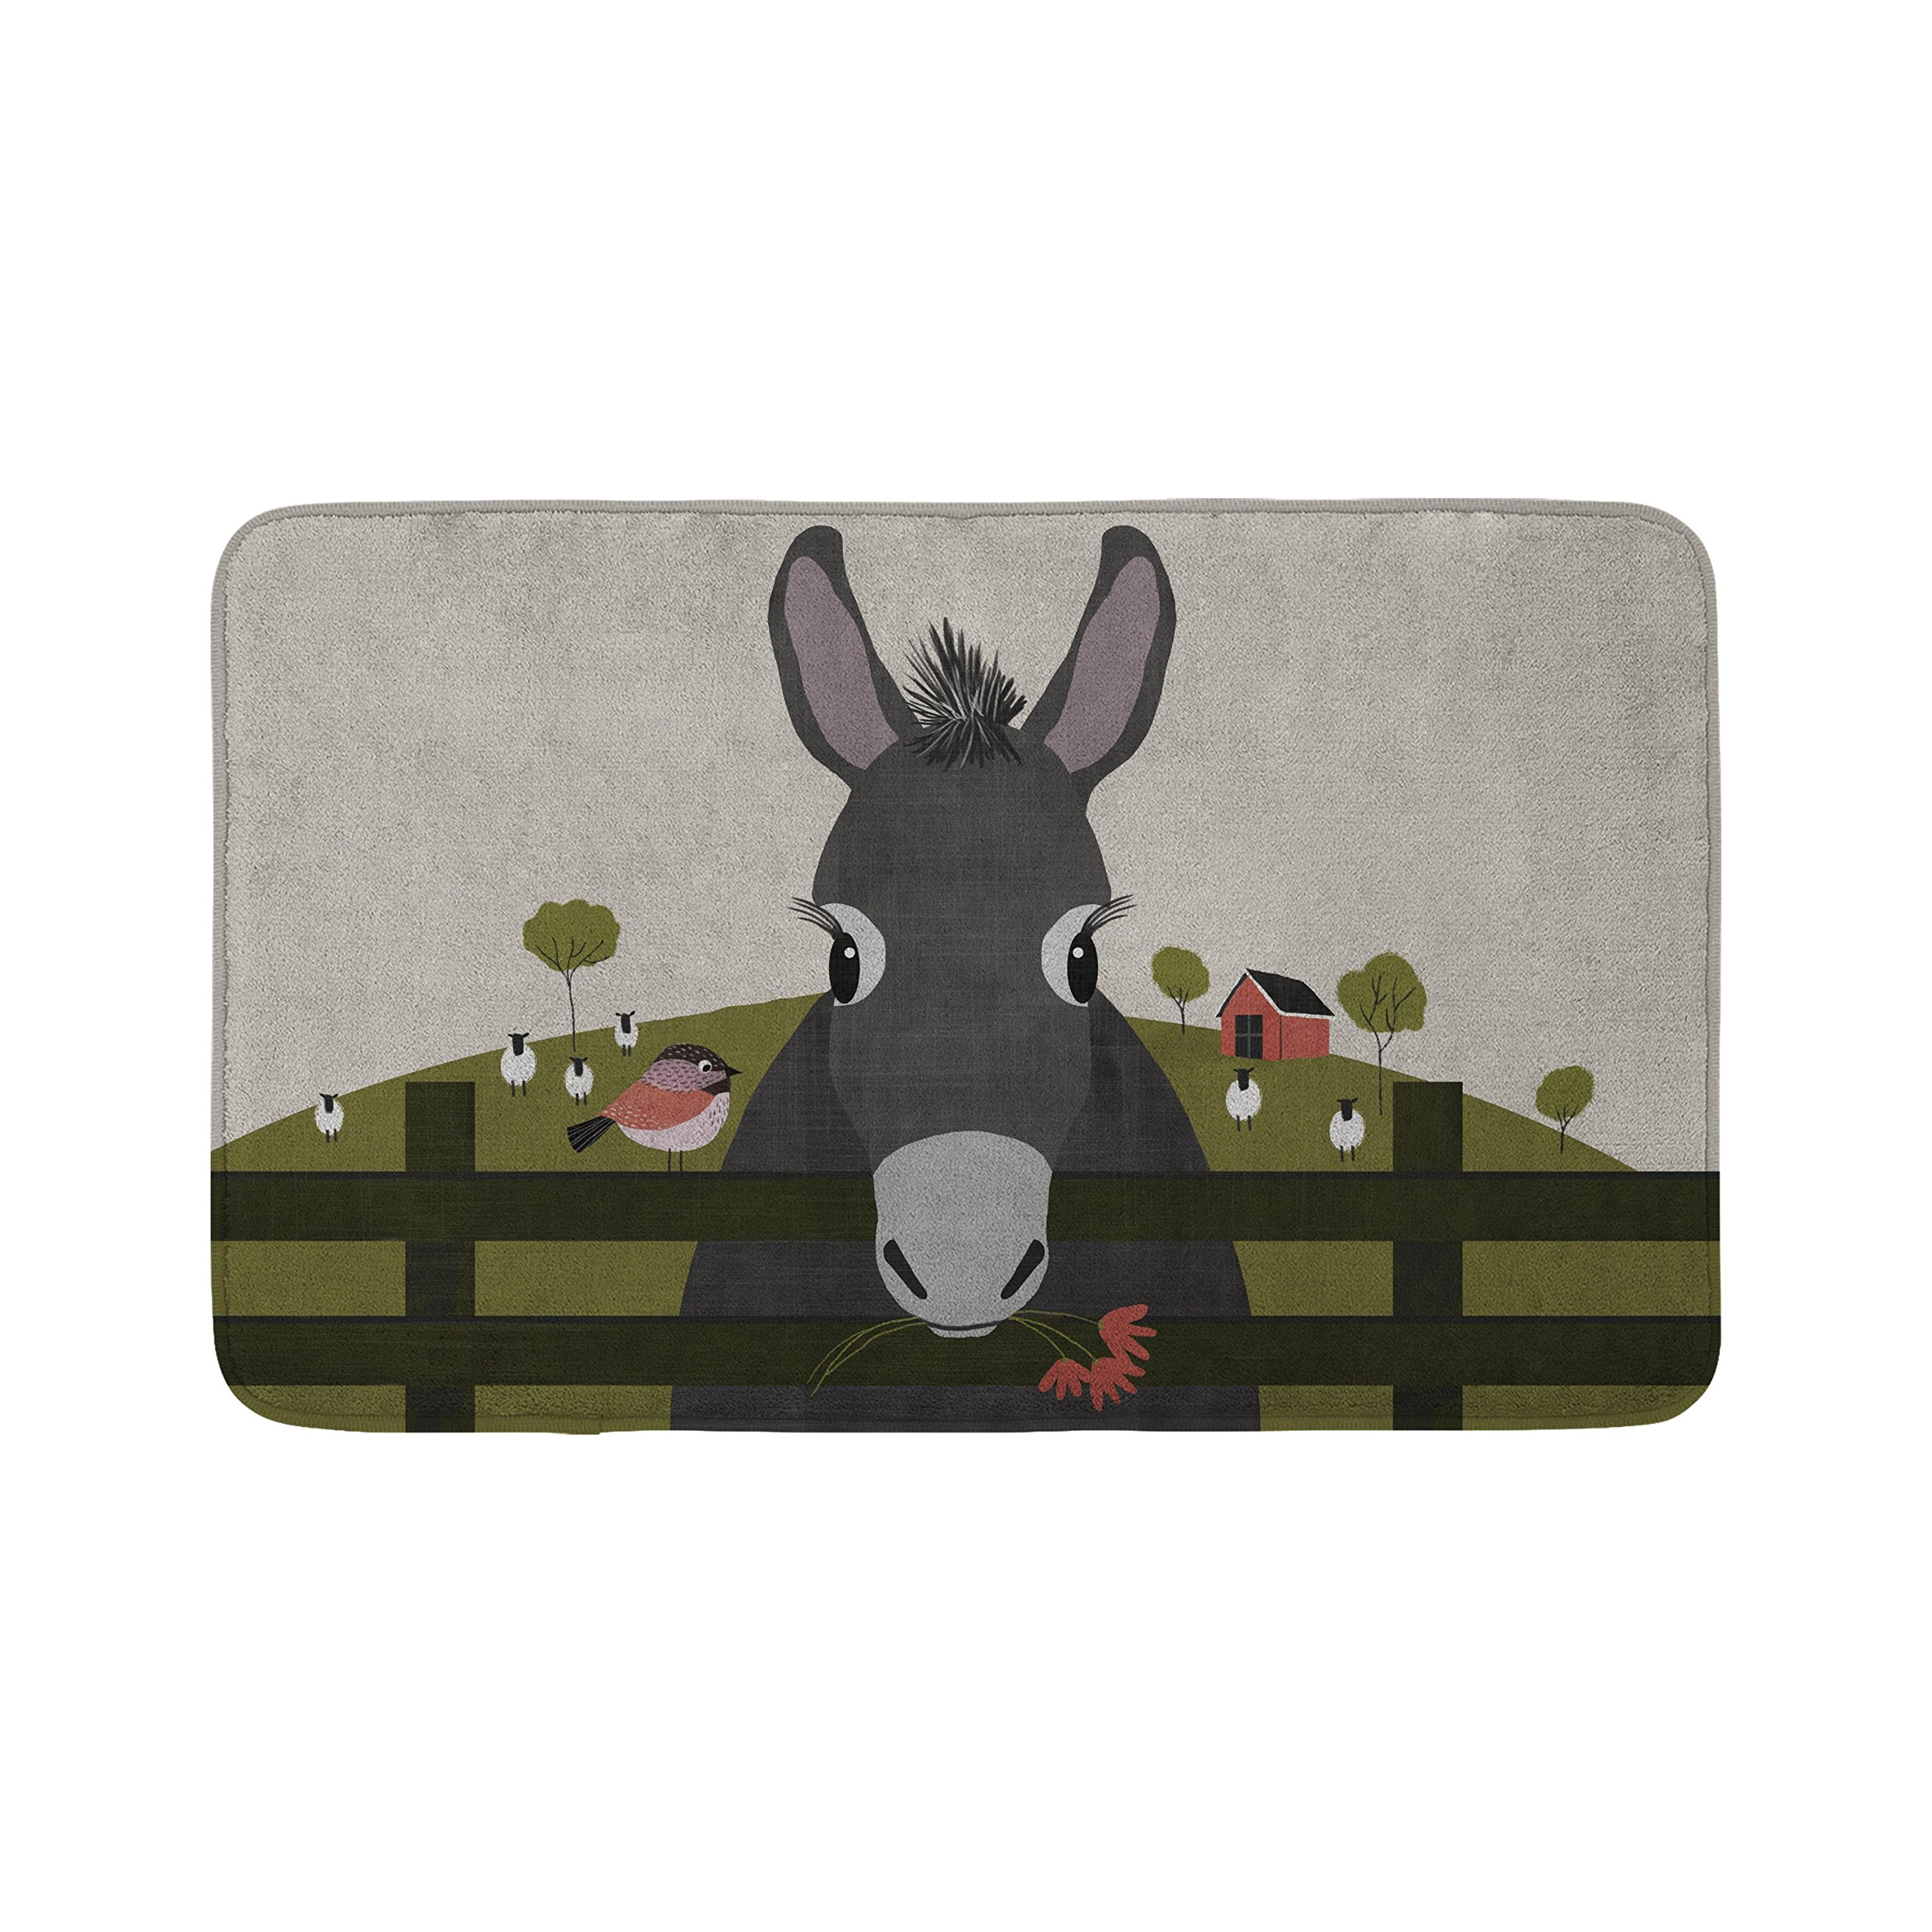 Mouse + Magpie Dolores the Donkey Farm Animal Bath Mat, Skid-Proof, Memory Foam, Soft, Quick-Dry Microfiber, 31''x19'' for Toddler, Kid, Child Bathroom